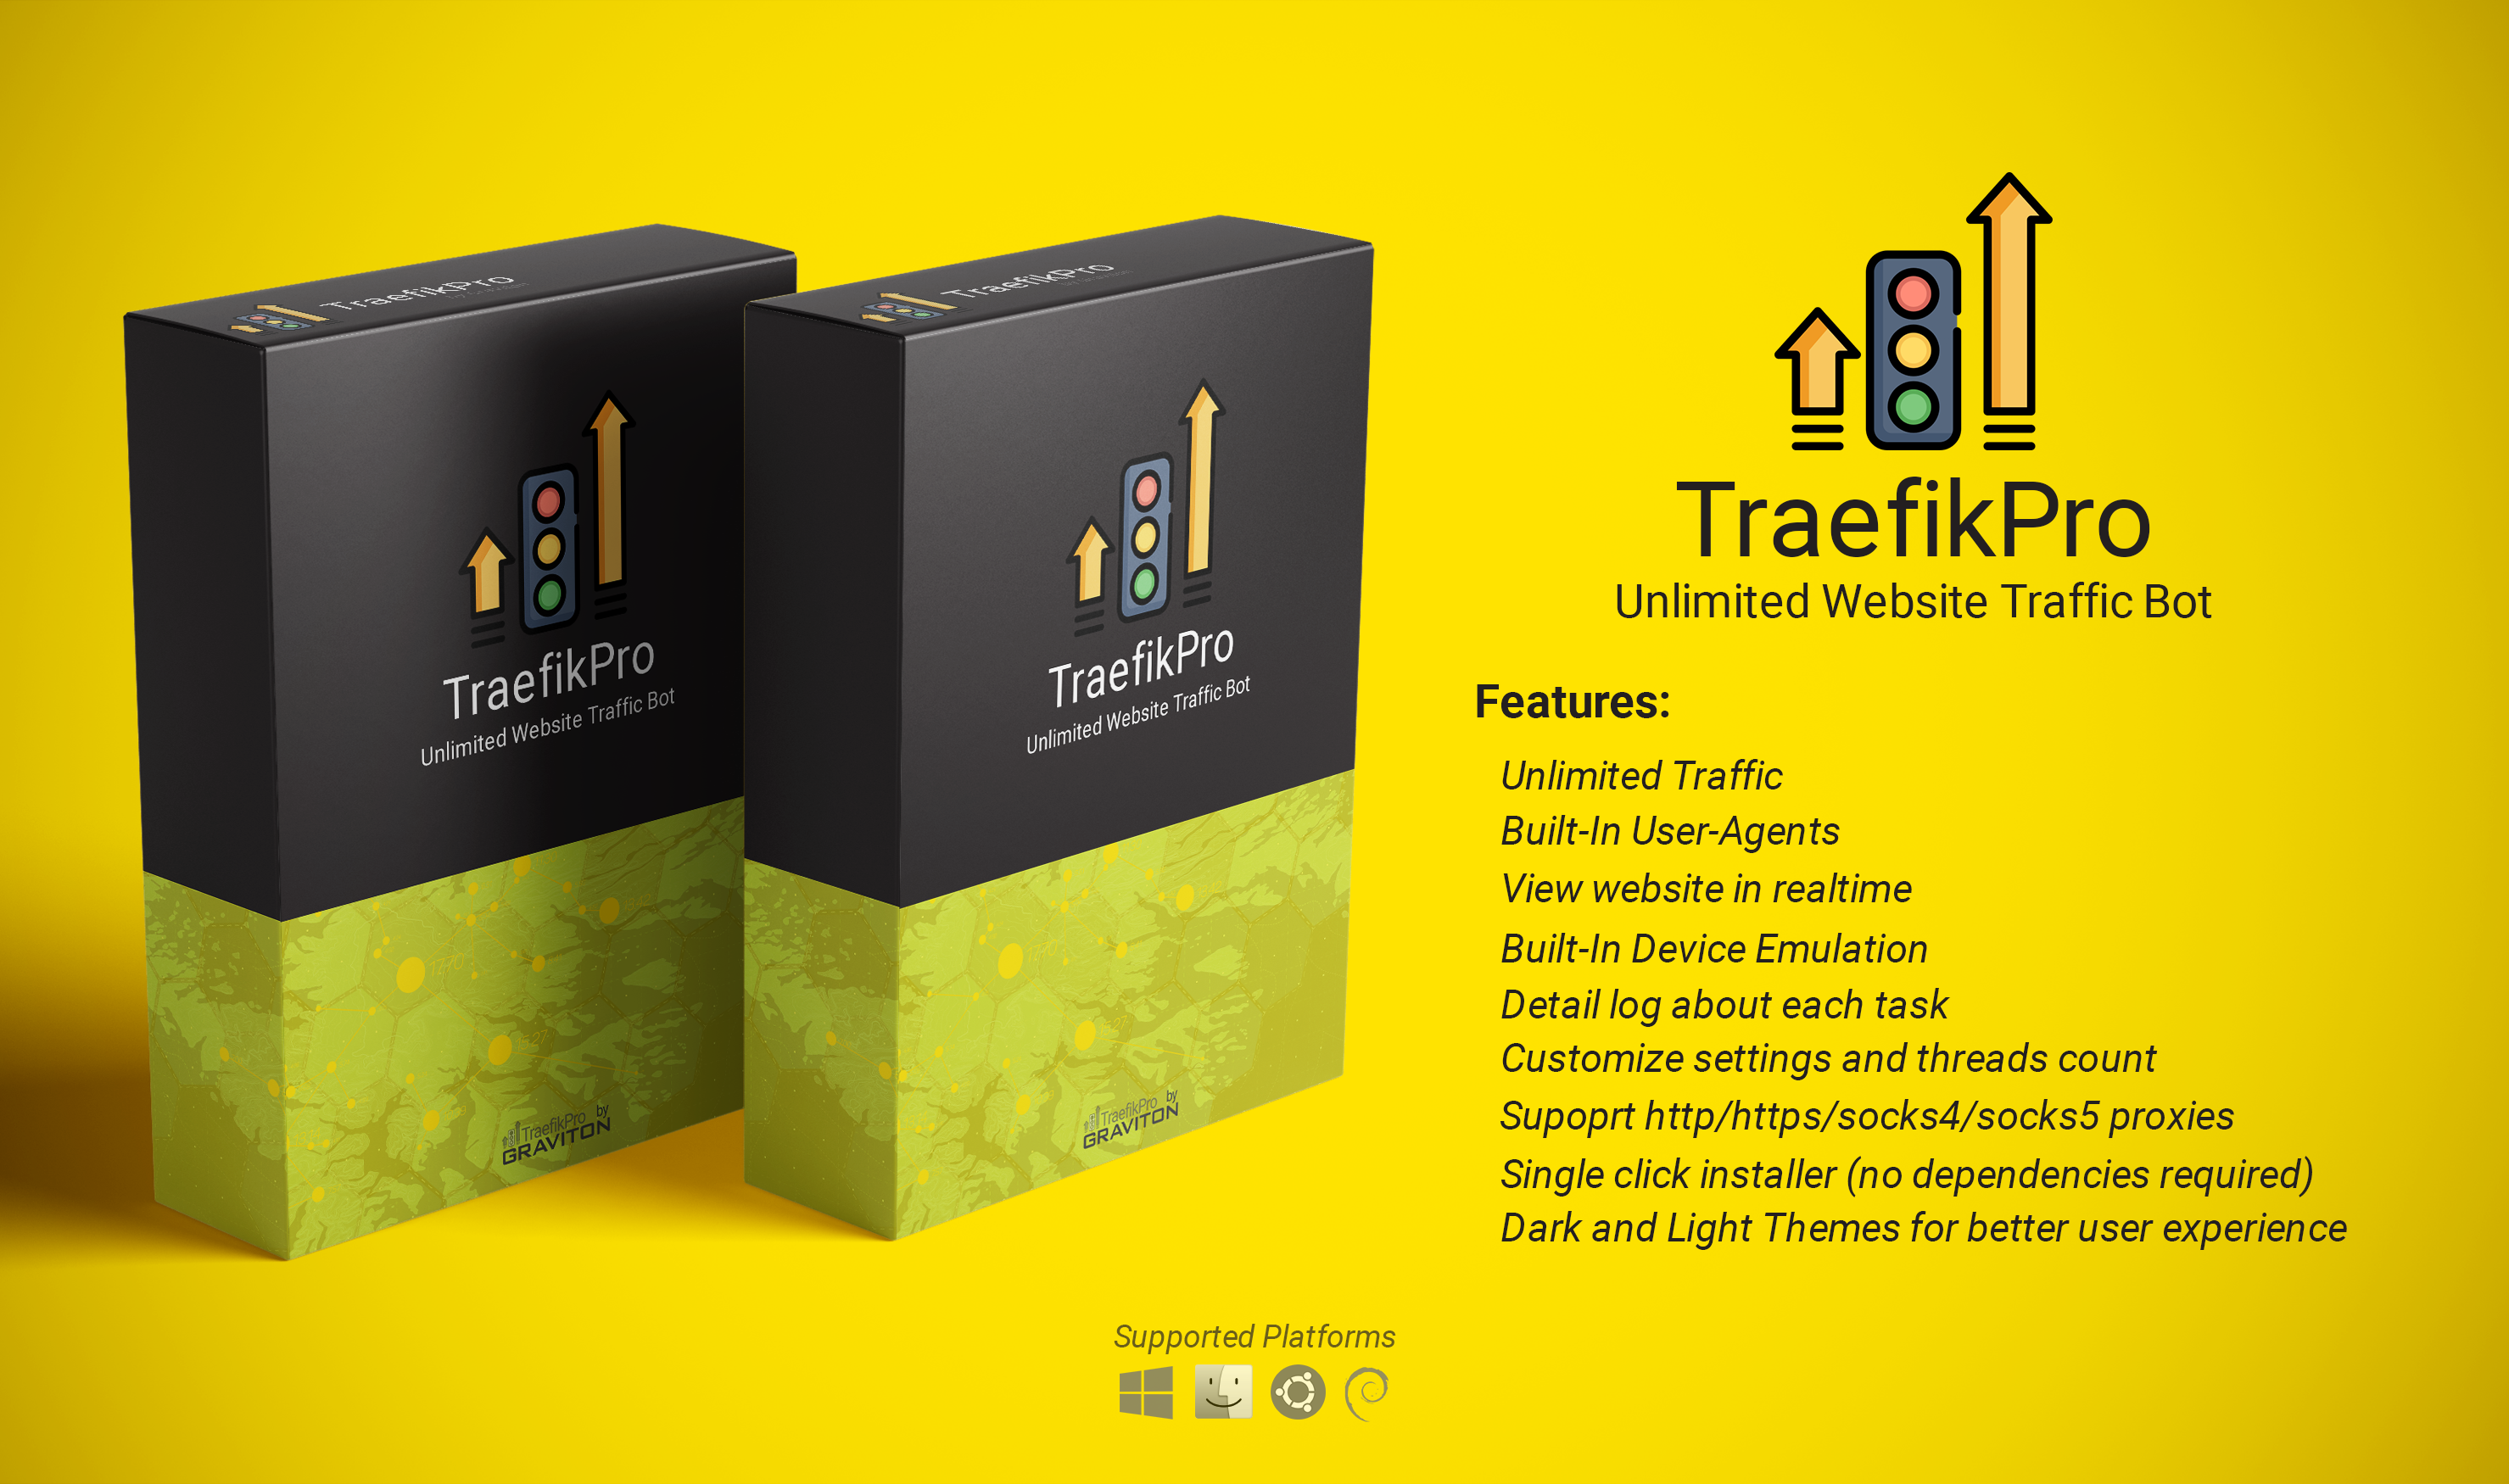 TraefikPro - Generate UNLIMITED Realtime Website Traffic